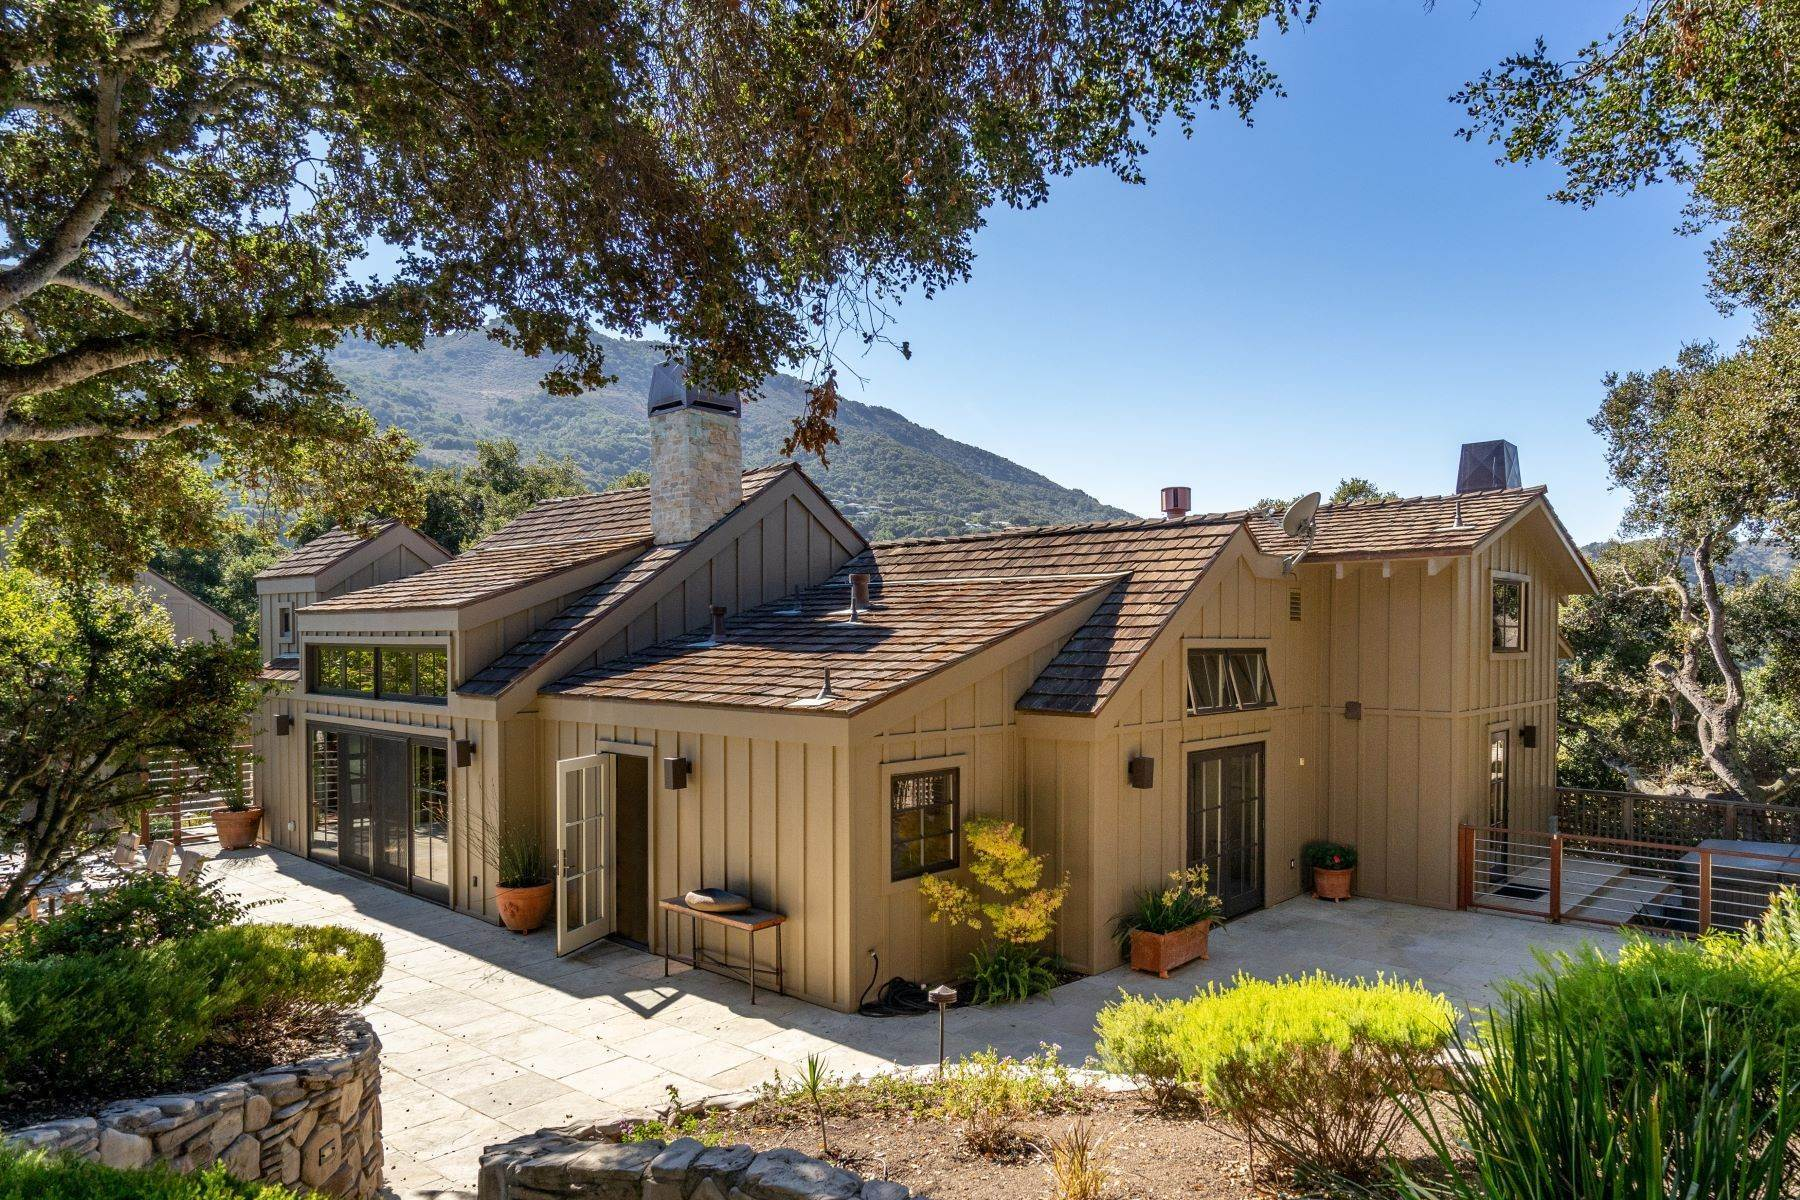 Single Family Homes のために 売買 アット Gorgeous Contemporary Custom Home 16 Scarlett Road Carmel Valley, カリフォルニア 93924 アメリカ